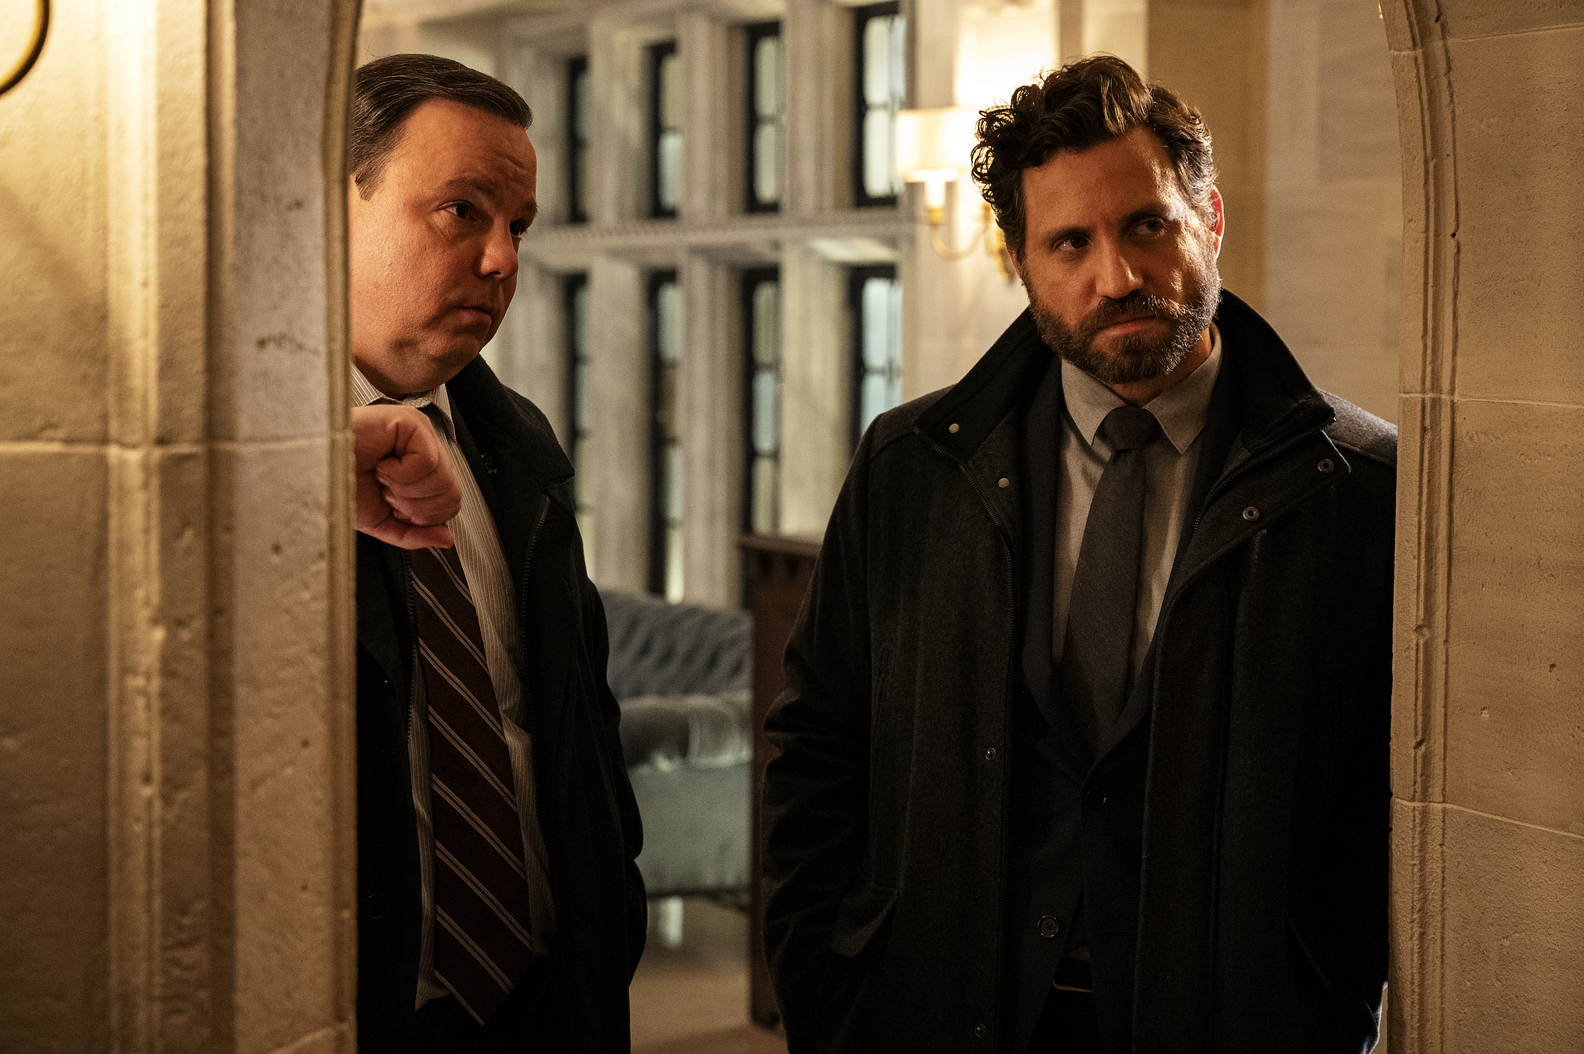 Edgar Ramirez talks The Undoing HBO - Brief Take